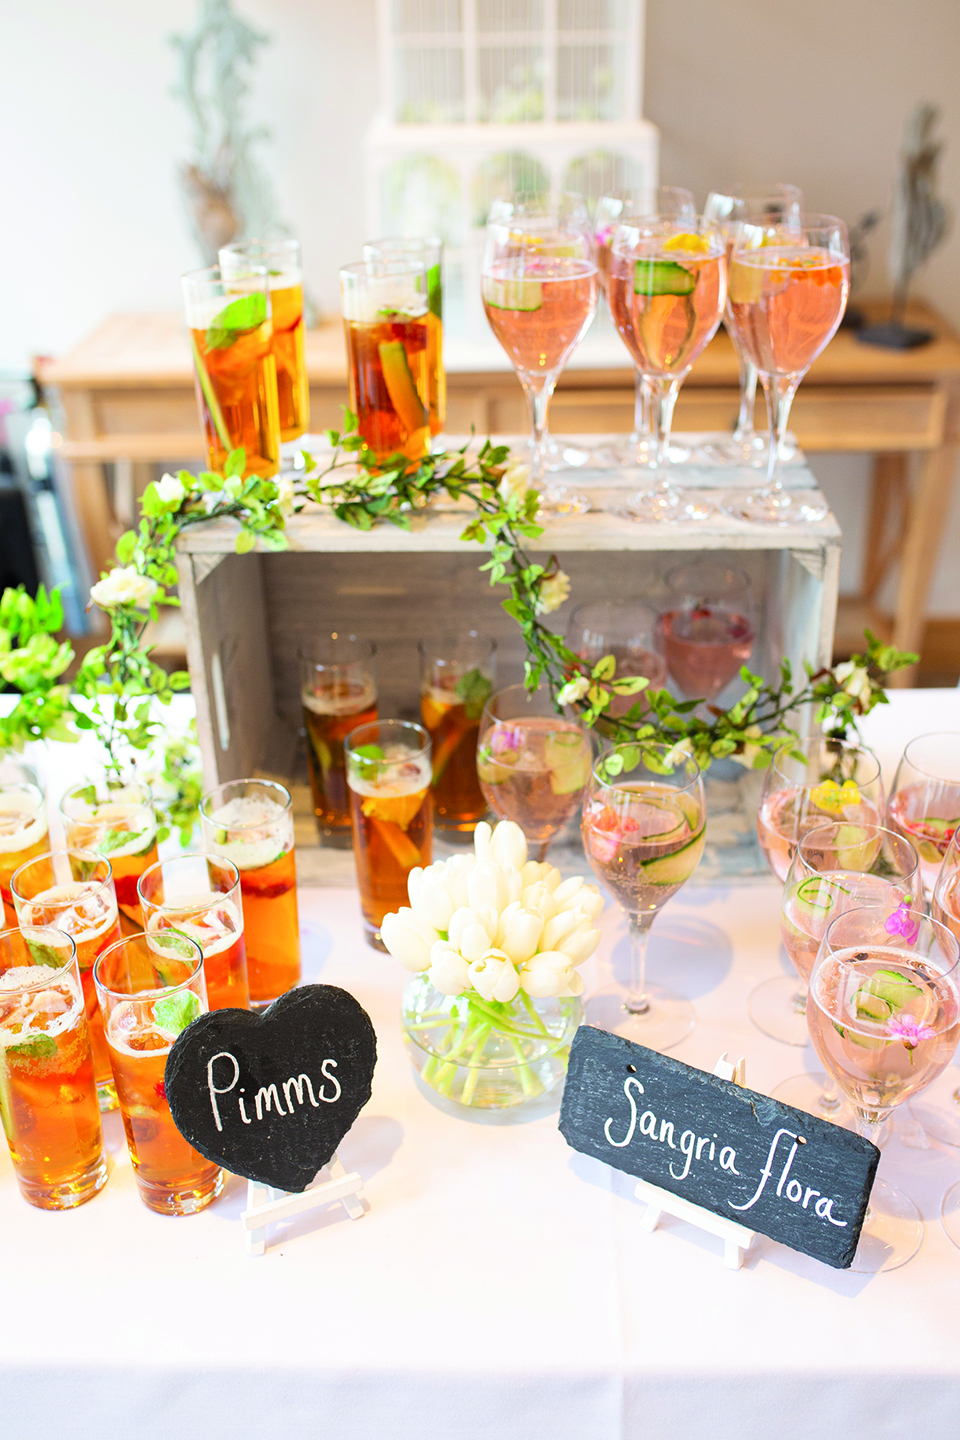 During the wedding reception at Bassmead Manor Barns guests were served a selection of refreshing welcome drinks